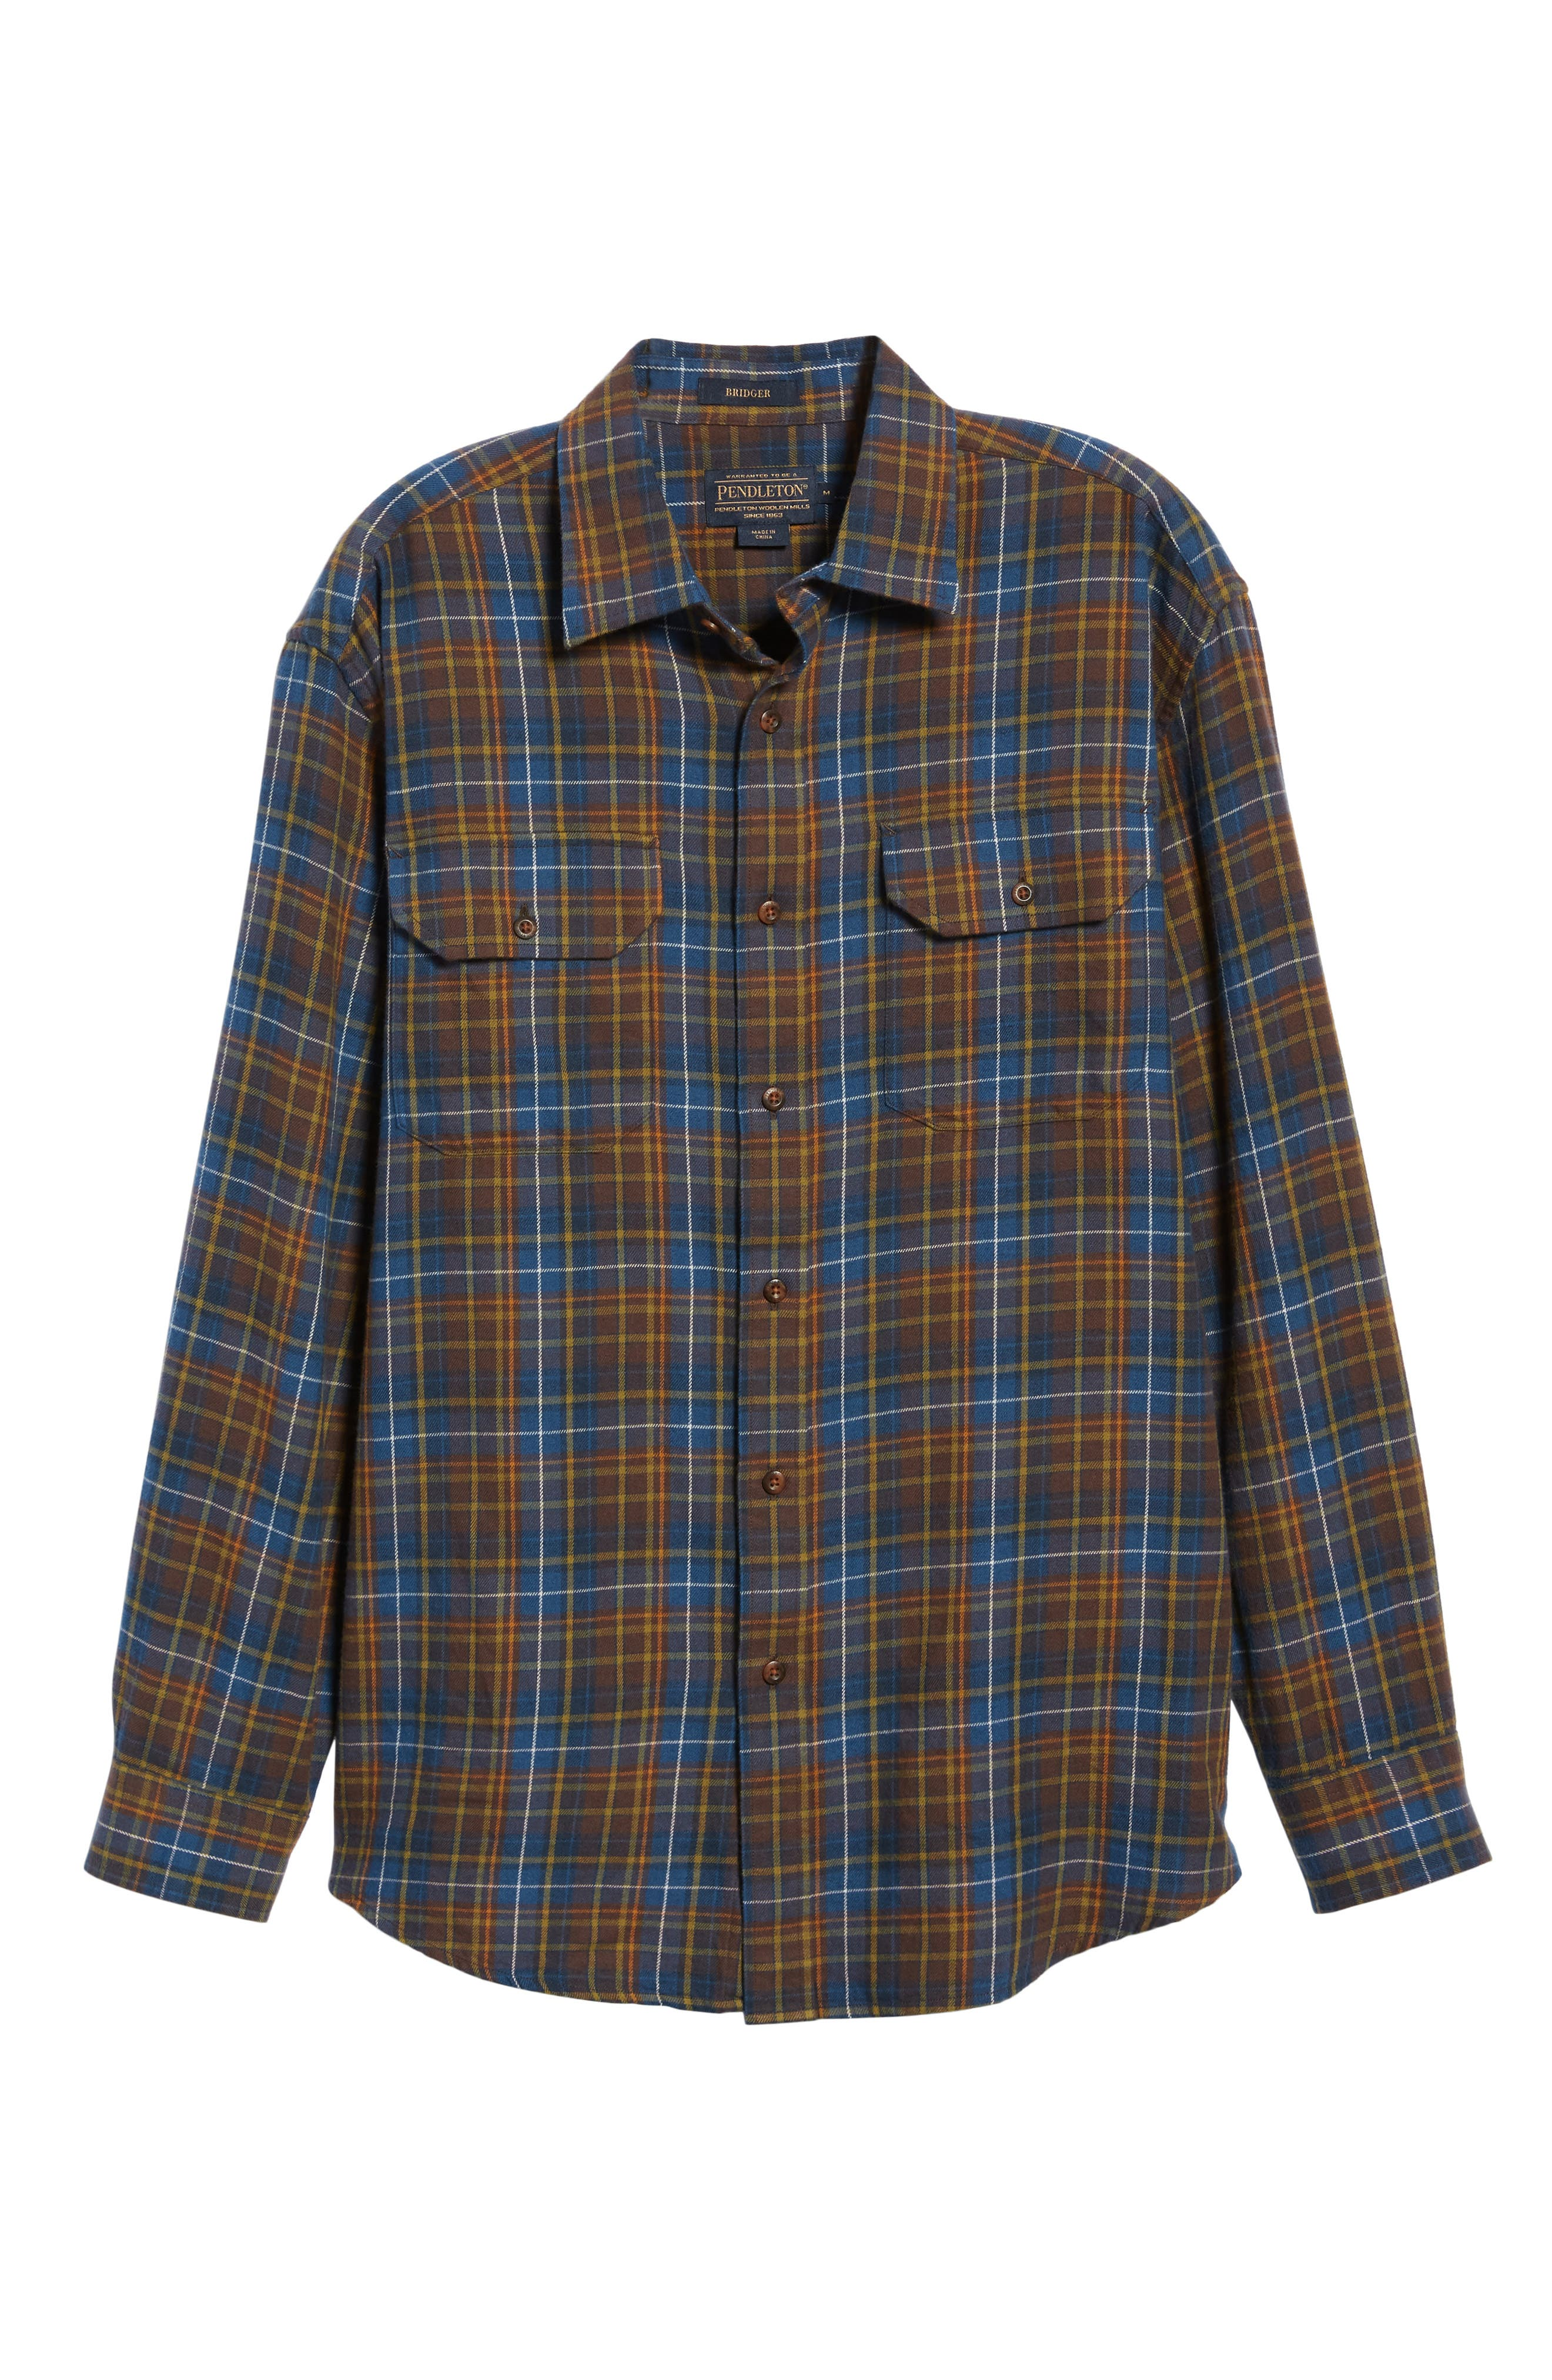 Bridger Plaid Twill Shirt,                             Alternate thumbnail 5, color,                             BLUE/ BROWN/ GREEN PLAID